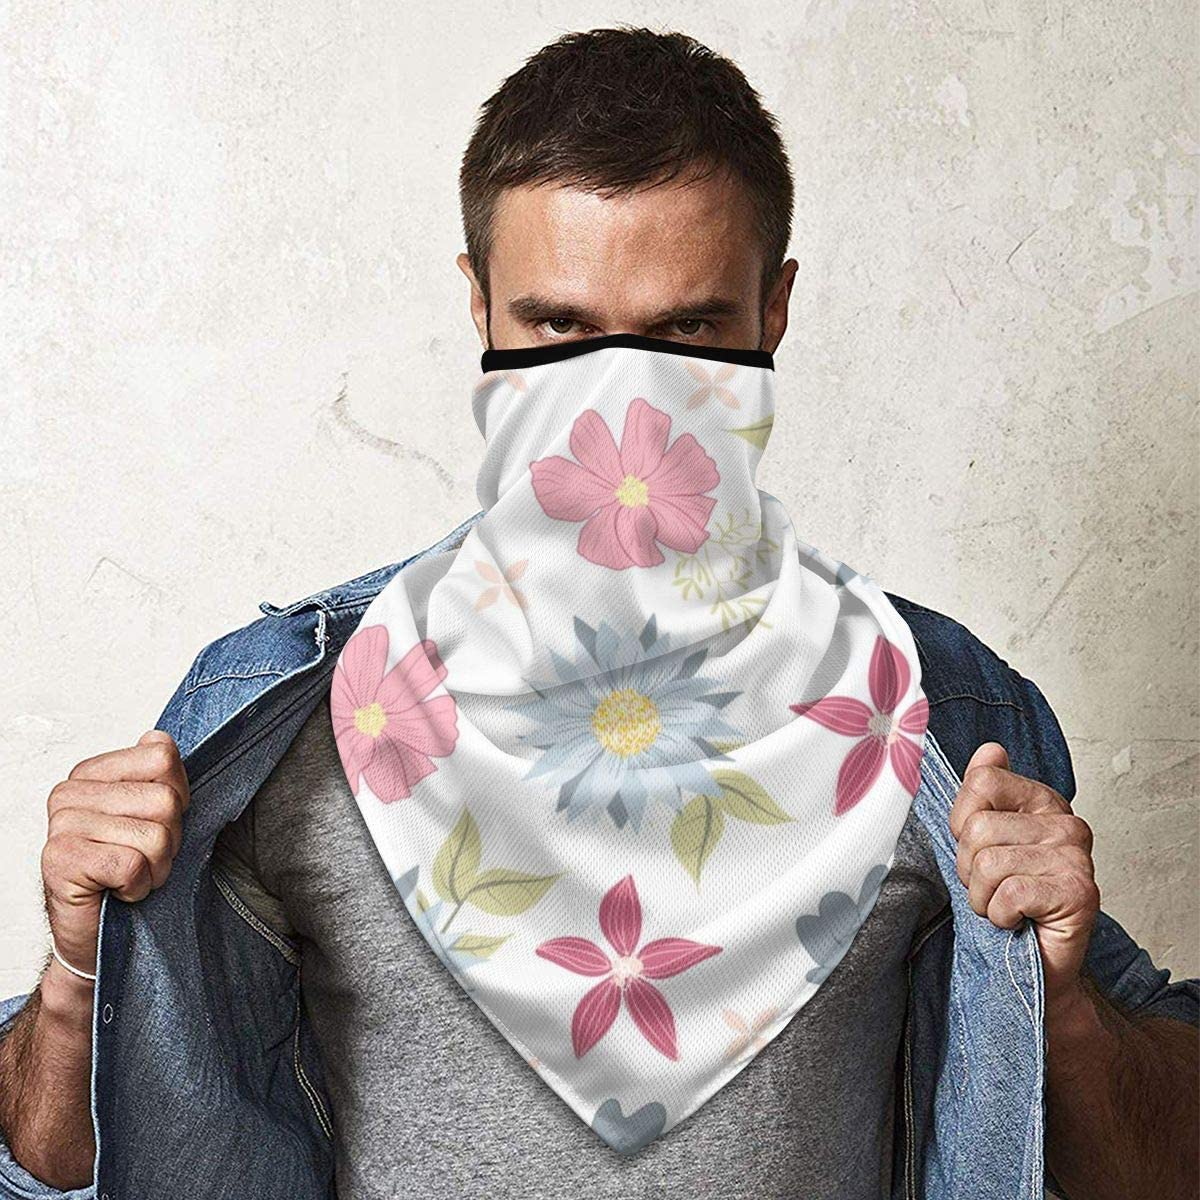 Wind-Resistant Face Mask/& Neck Gaiter,Balaclava Ski Masks,Breathable Tactical Hood,Windproof Face Warmer for Running,Motorcycling,Hiking-Spring Flowers